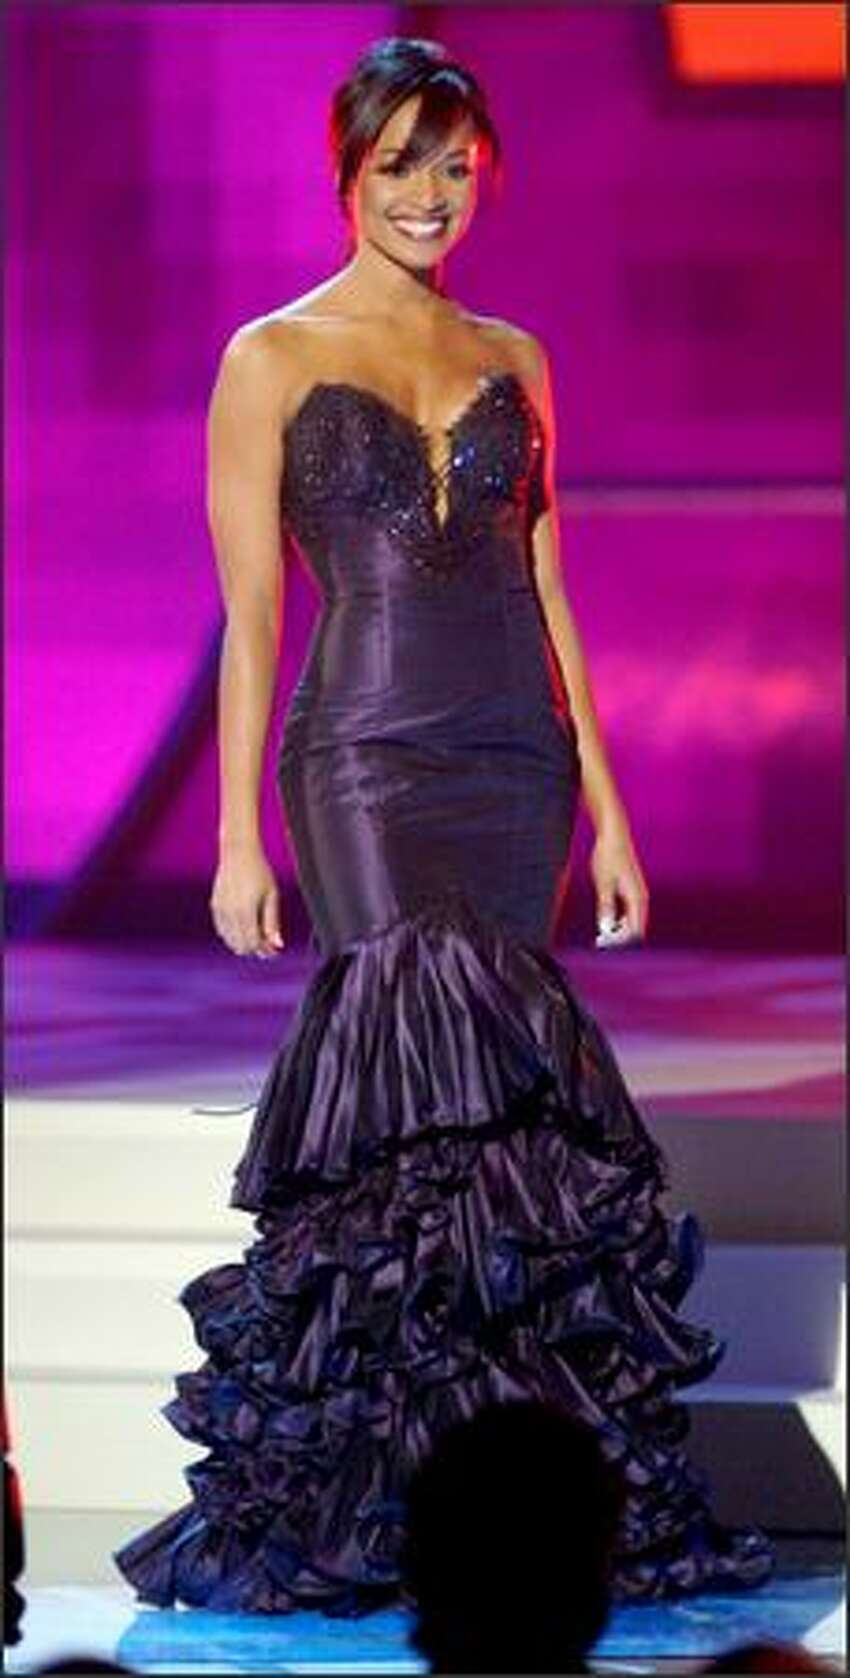 Tamiko Nash, Miss California, competes in the evening gown portion of the Miss USA competition at the 1st Mariner Arena in Baltimore.